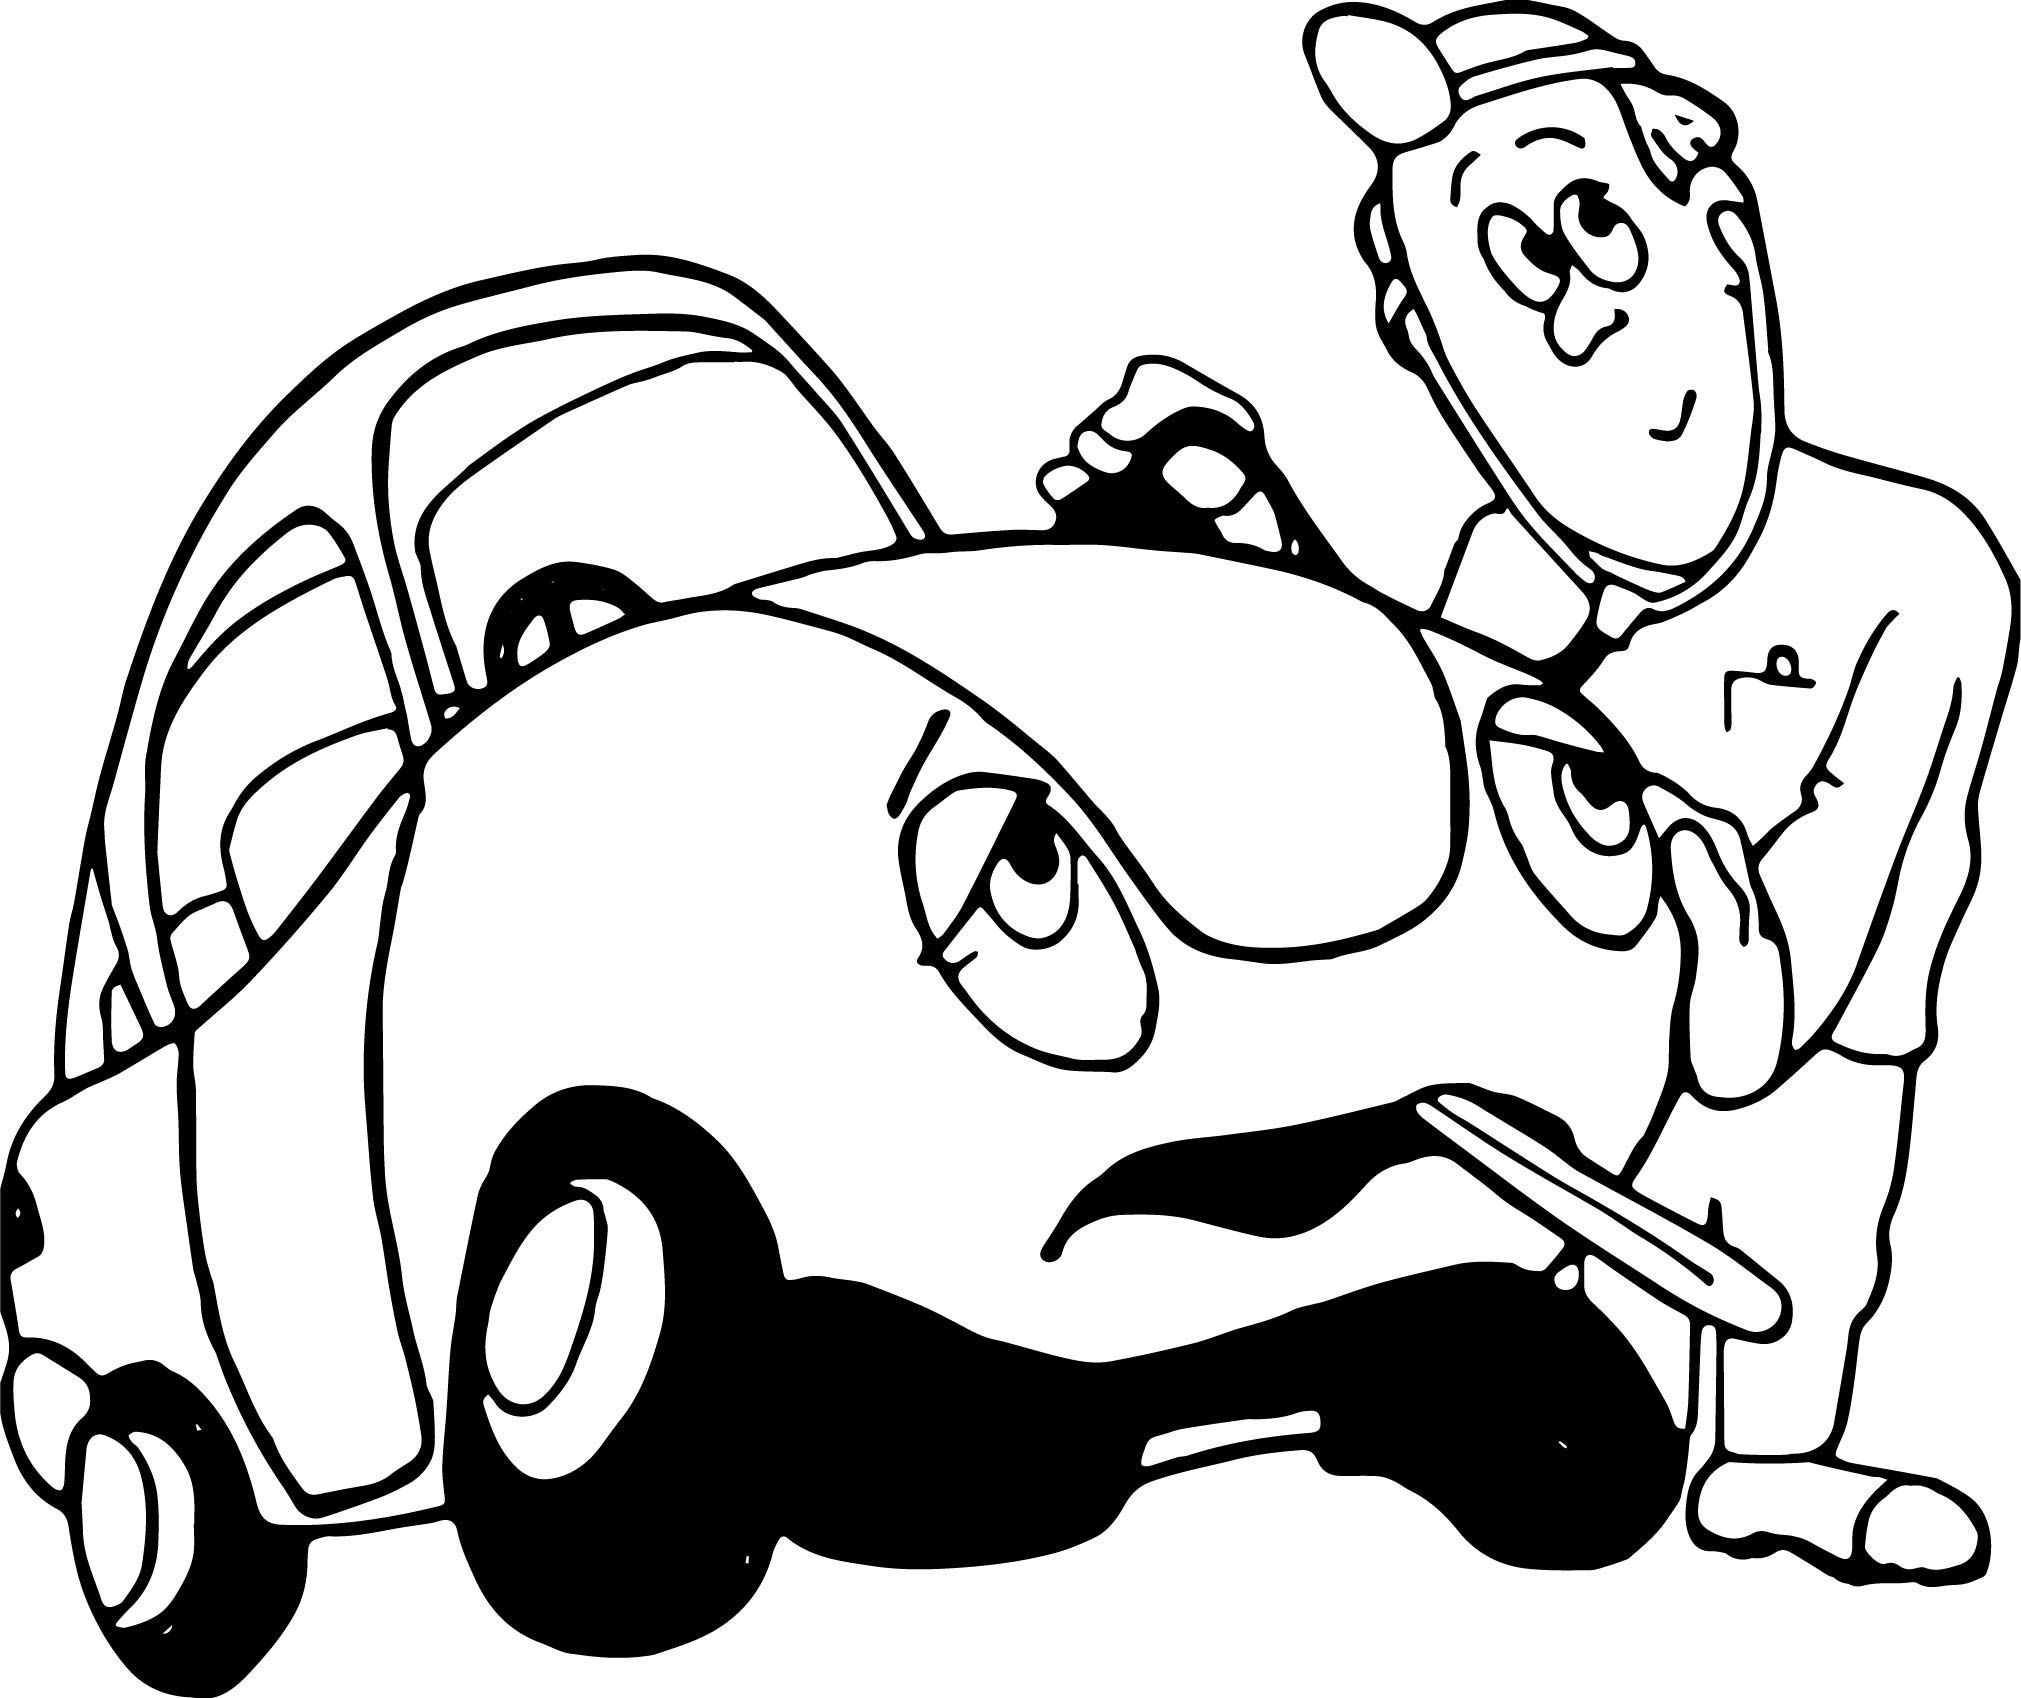 Cool Car Doctor Coloring Page Car Doctor Aston Martin Vulcan Super Cars In 2021 Race Car Coloring Pages Car Doctor Cars Coloring Pages